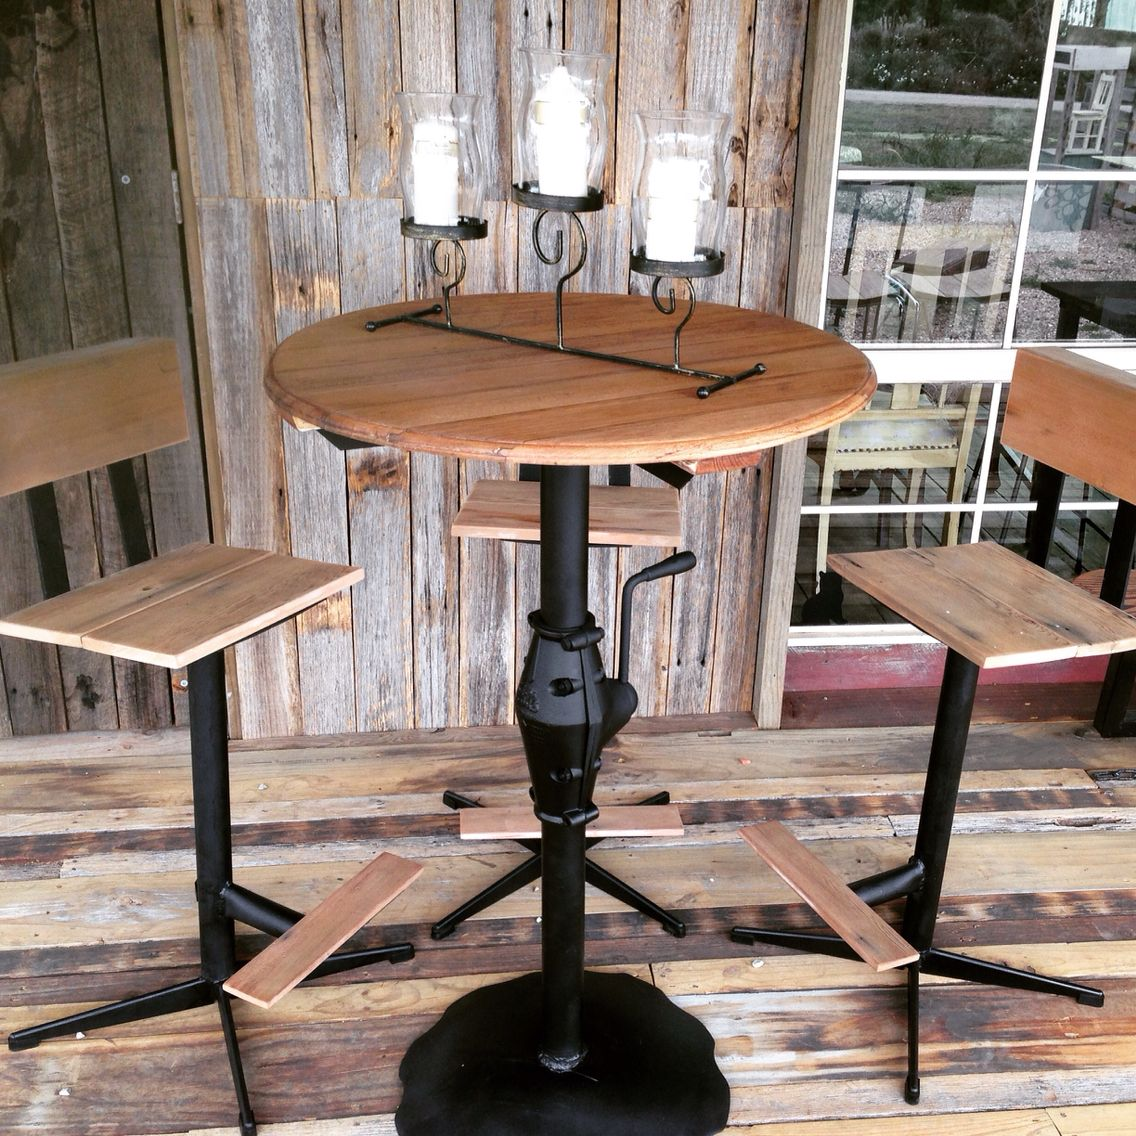 4 Piece Mancave Bar Table And Stools Upcycled From Hills Hoist, Plough  Disc, Reclaimed